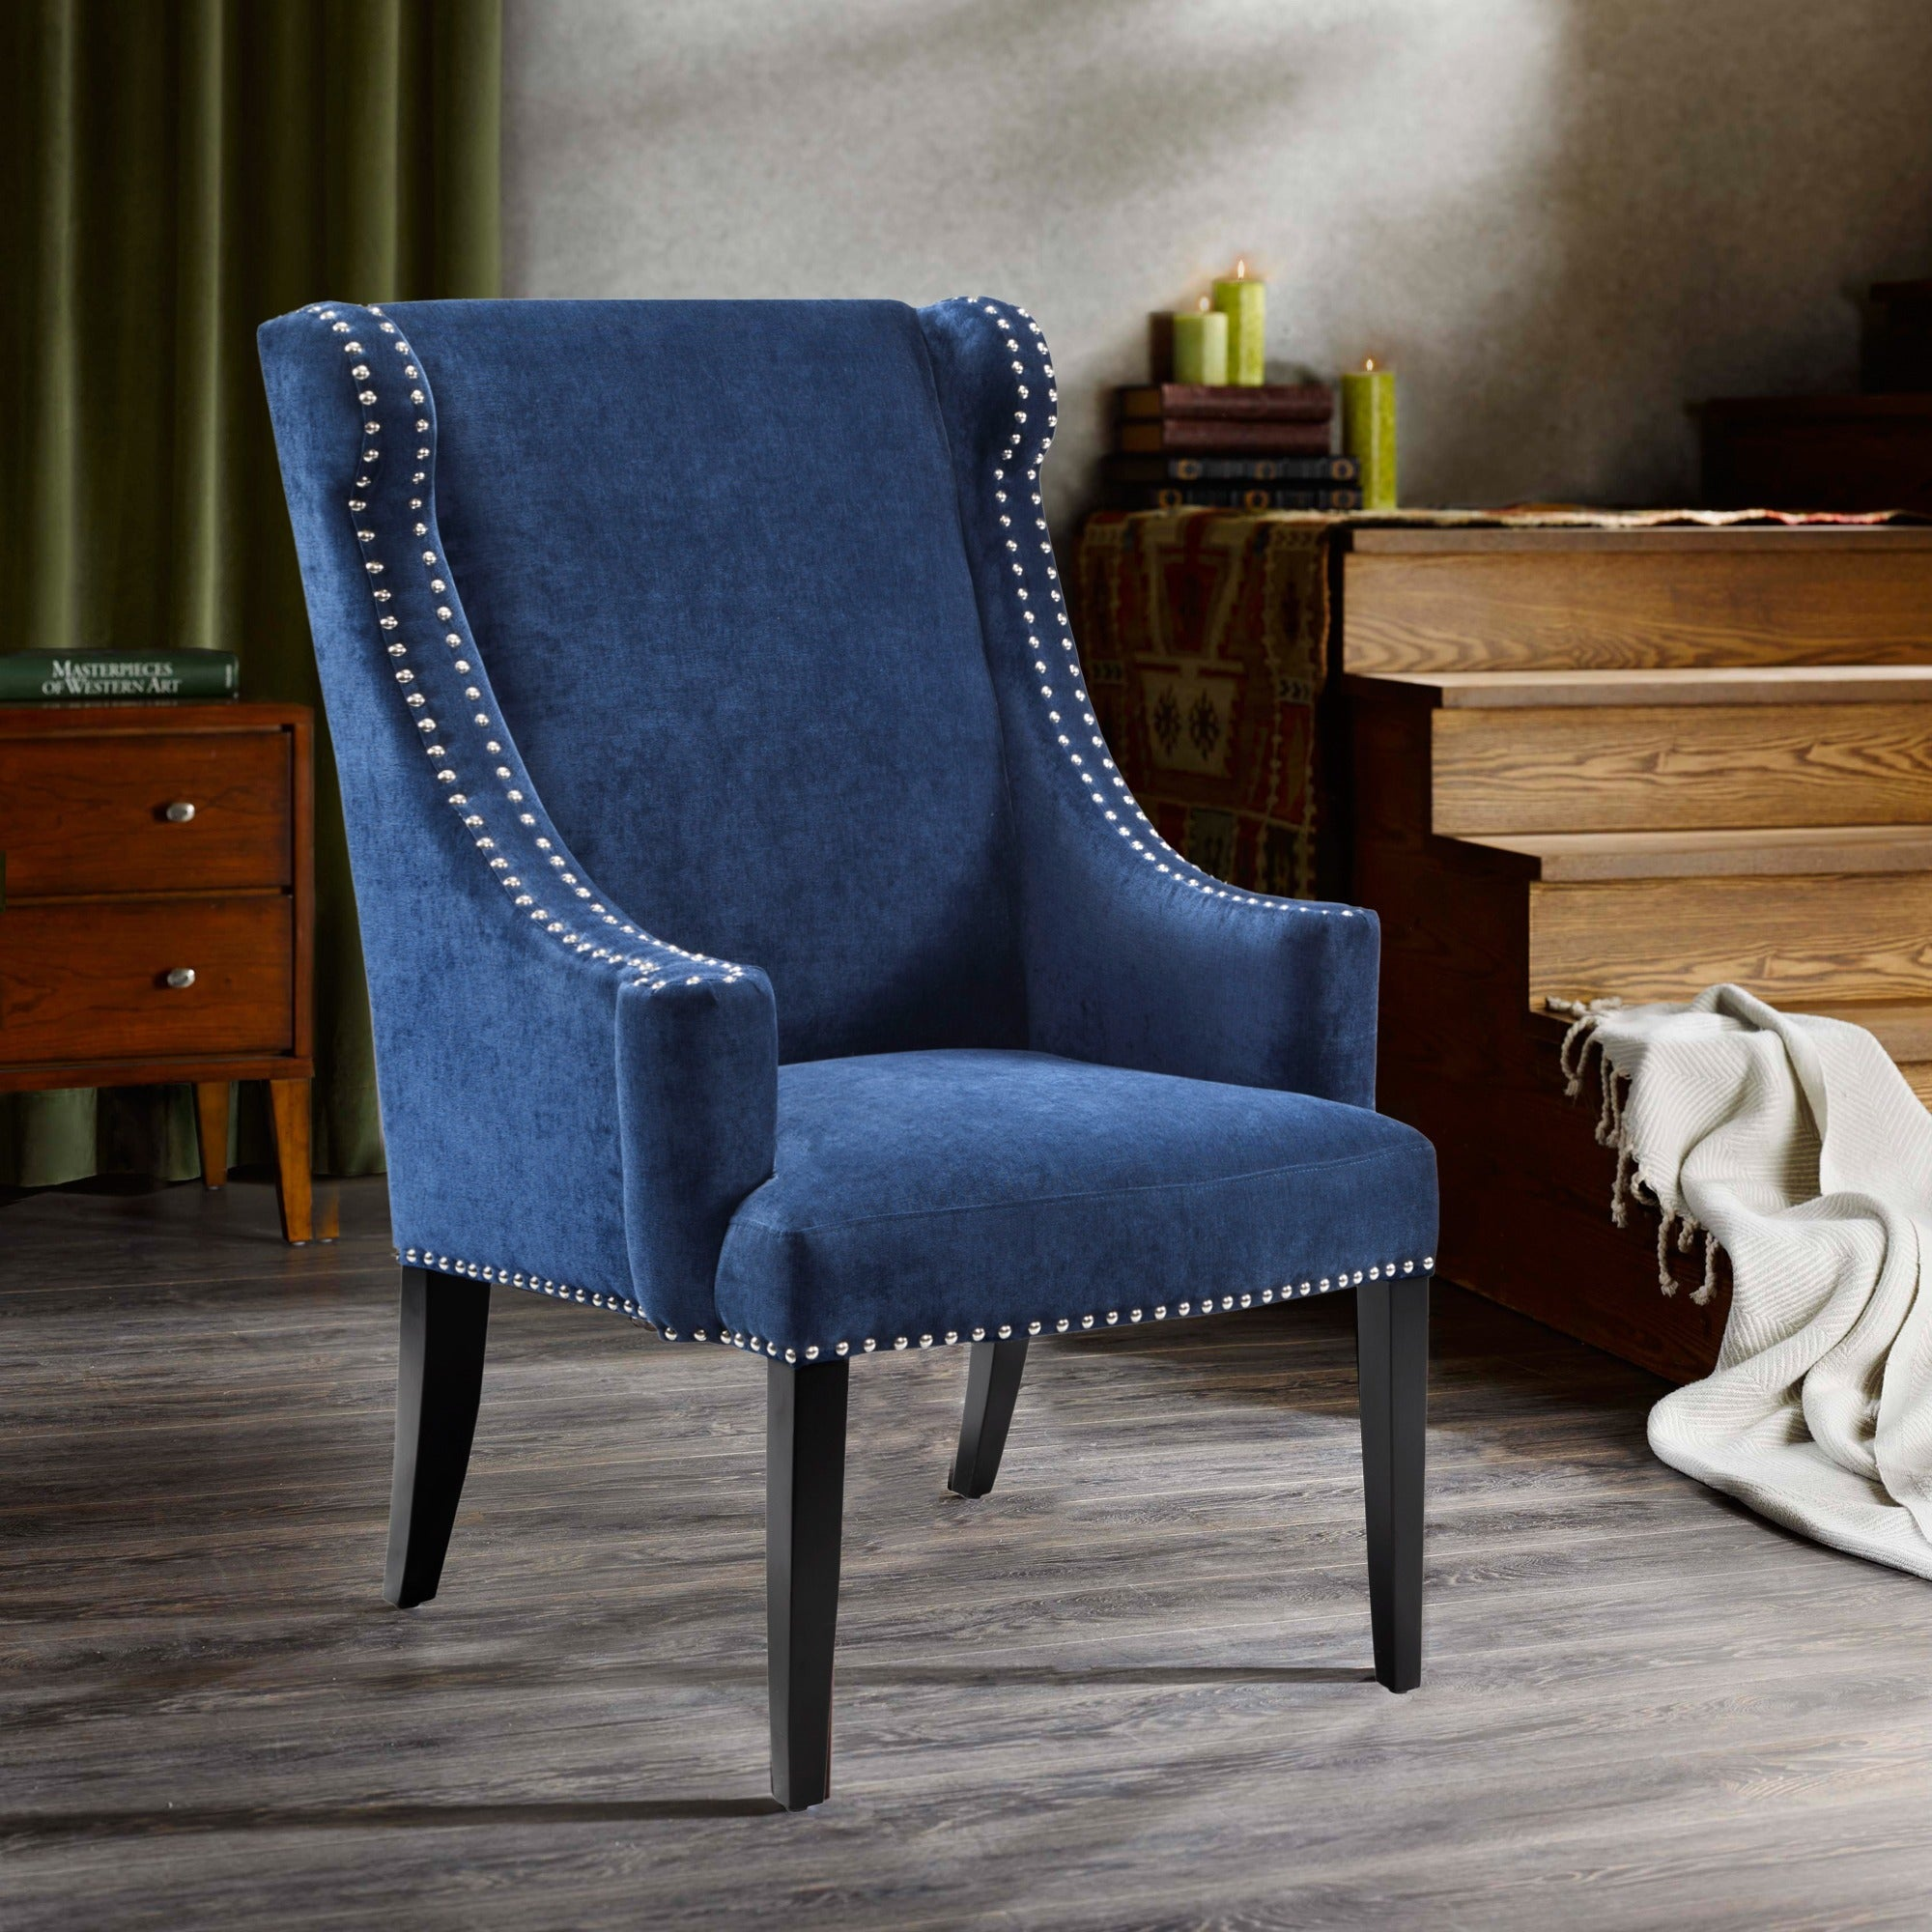 Madison Park Lucy Blue High Back Wing Chair 27 75 W X 29 5 D X 42 5 H